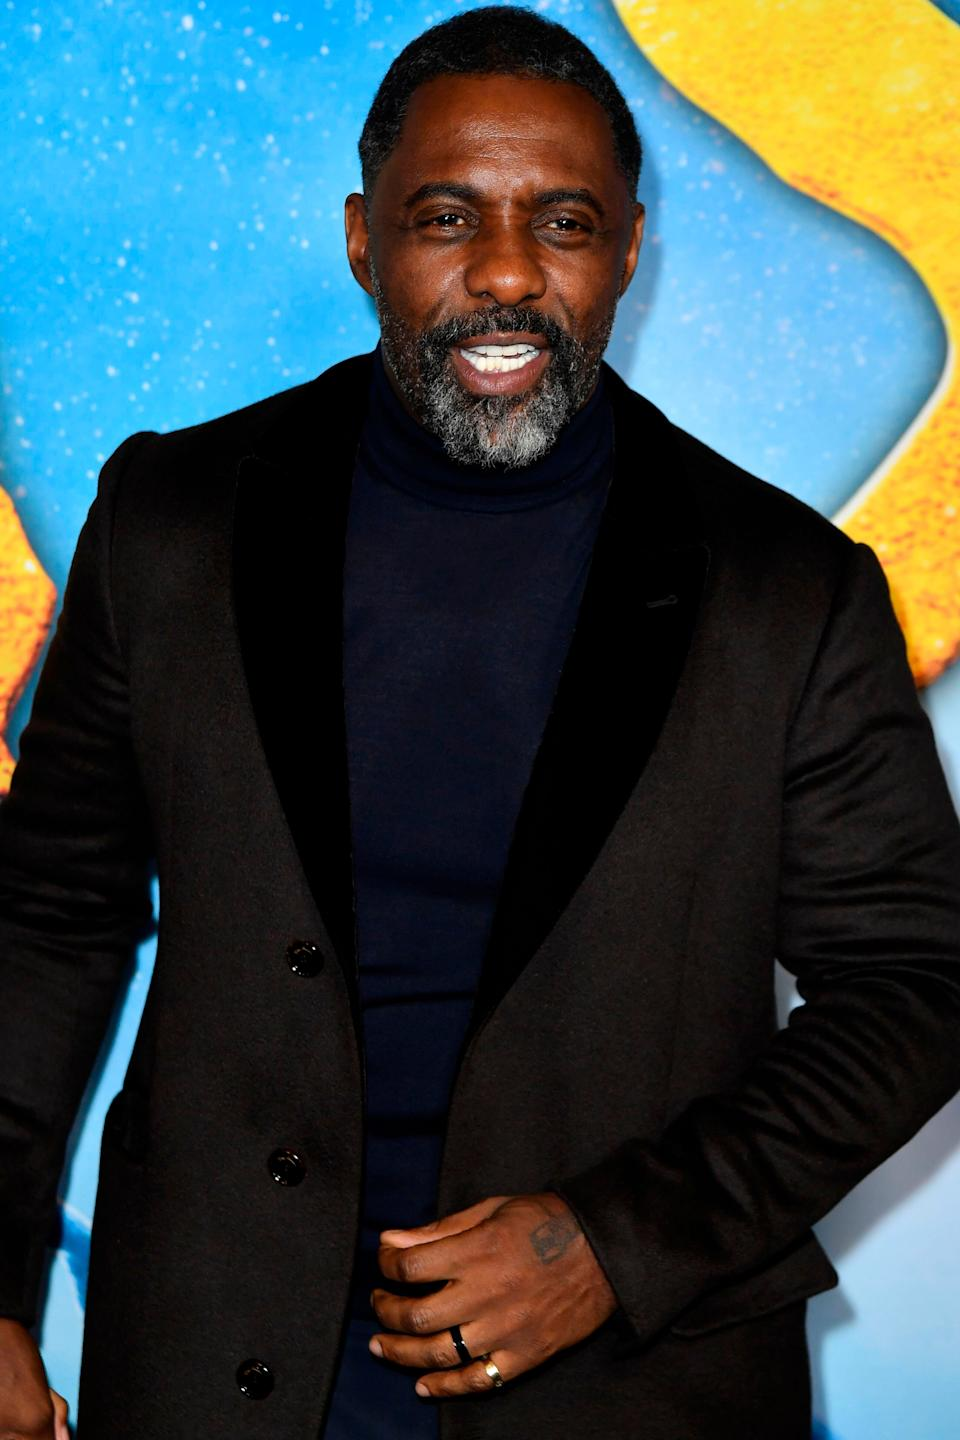 Idris at the Cats premiere last year (Photo: ANGELA WEISS via Getty Images)